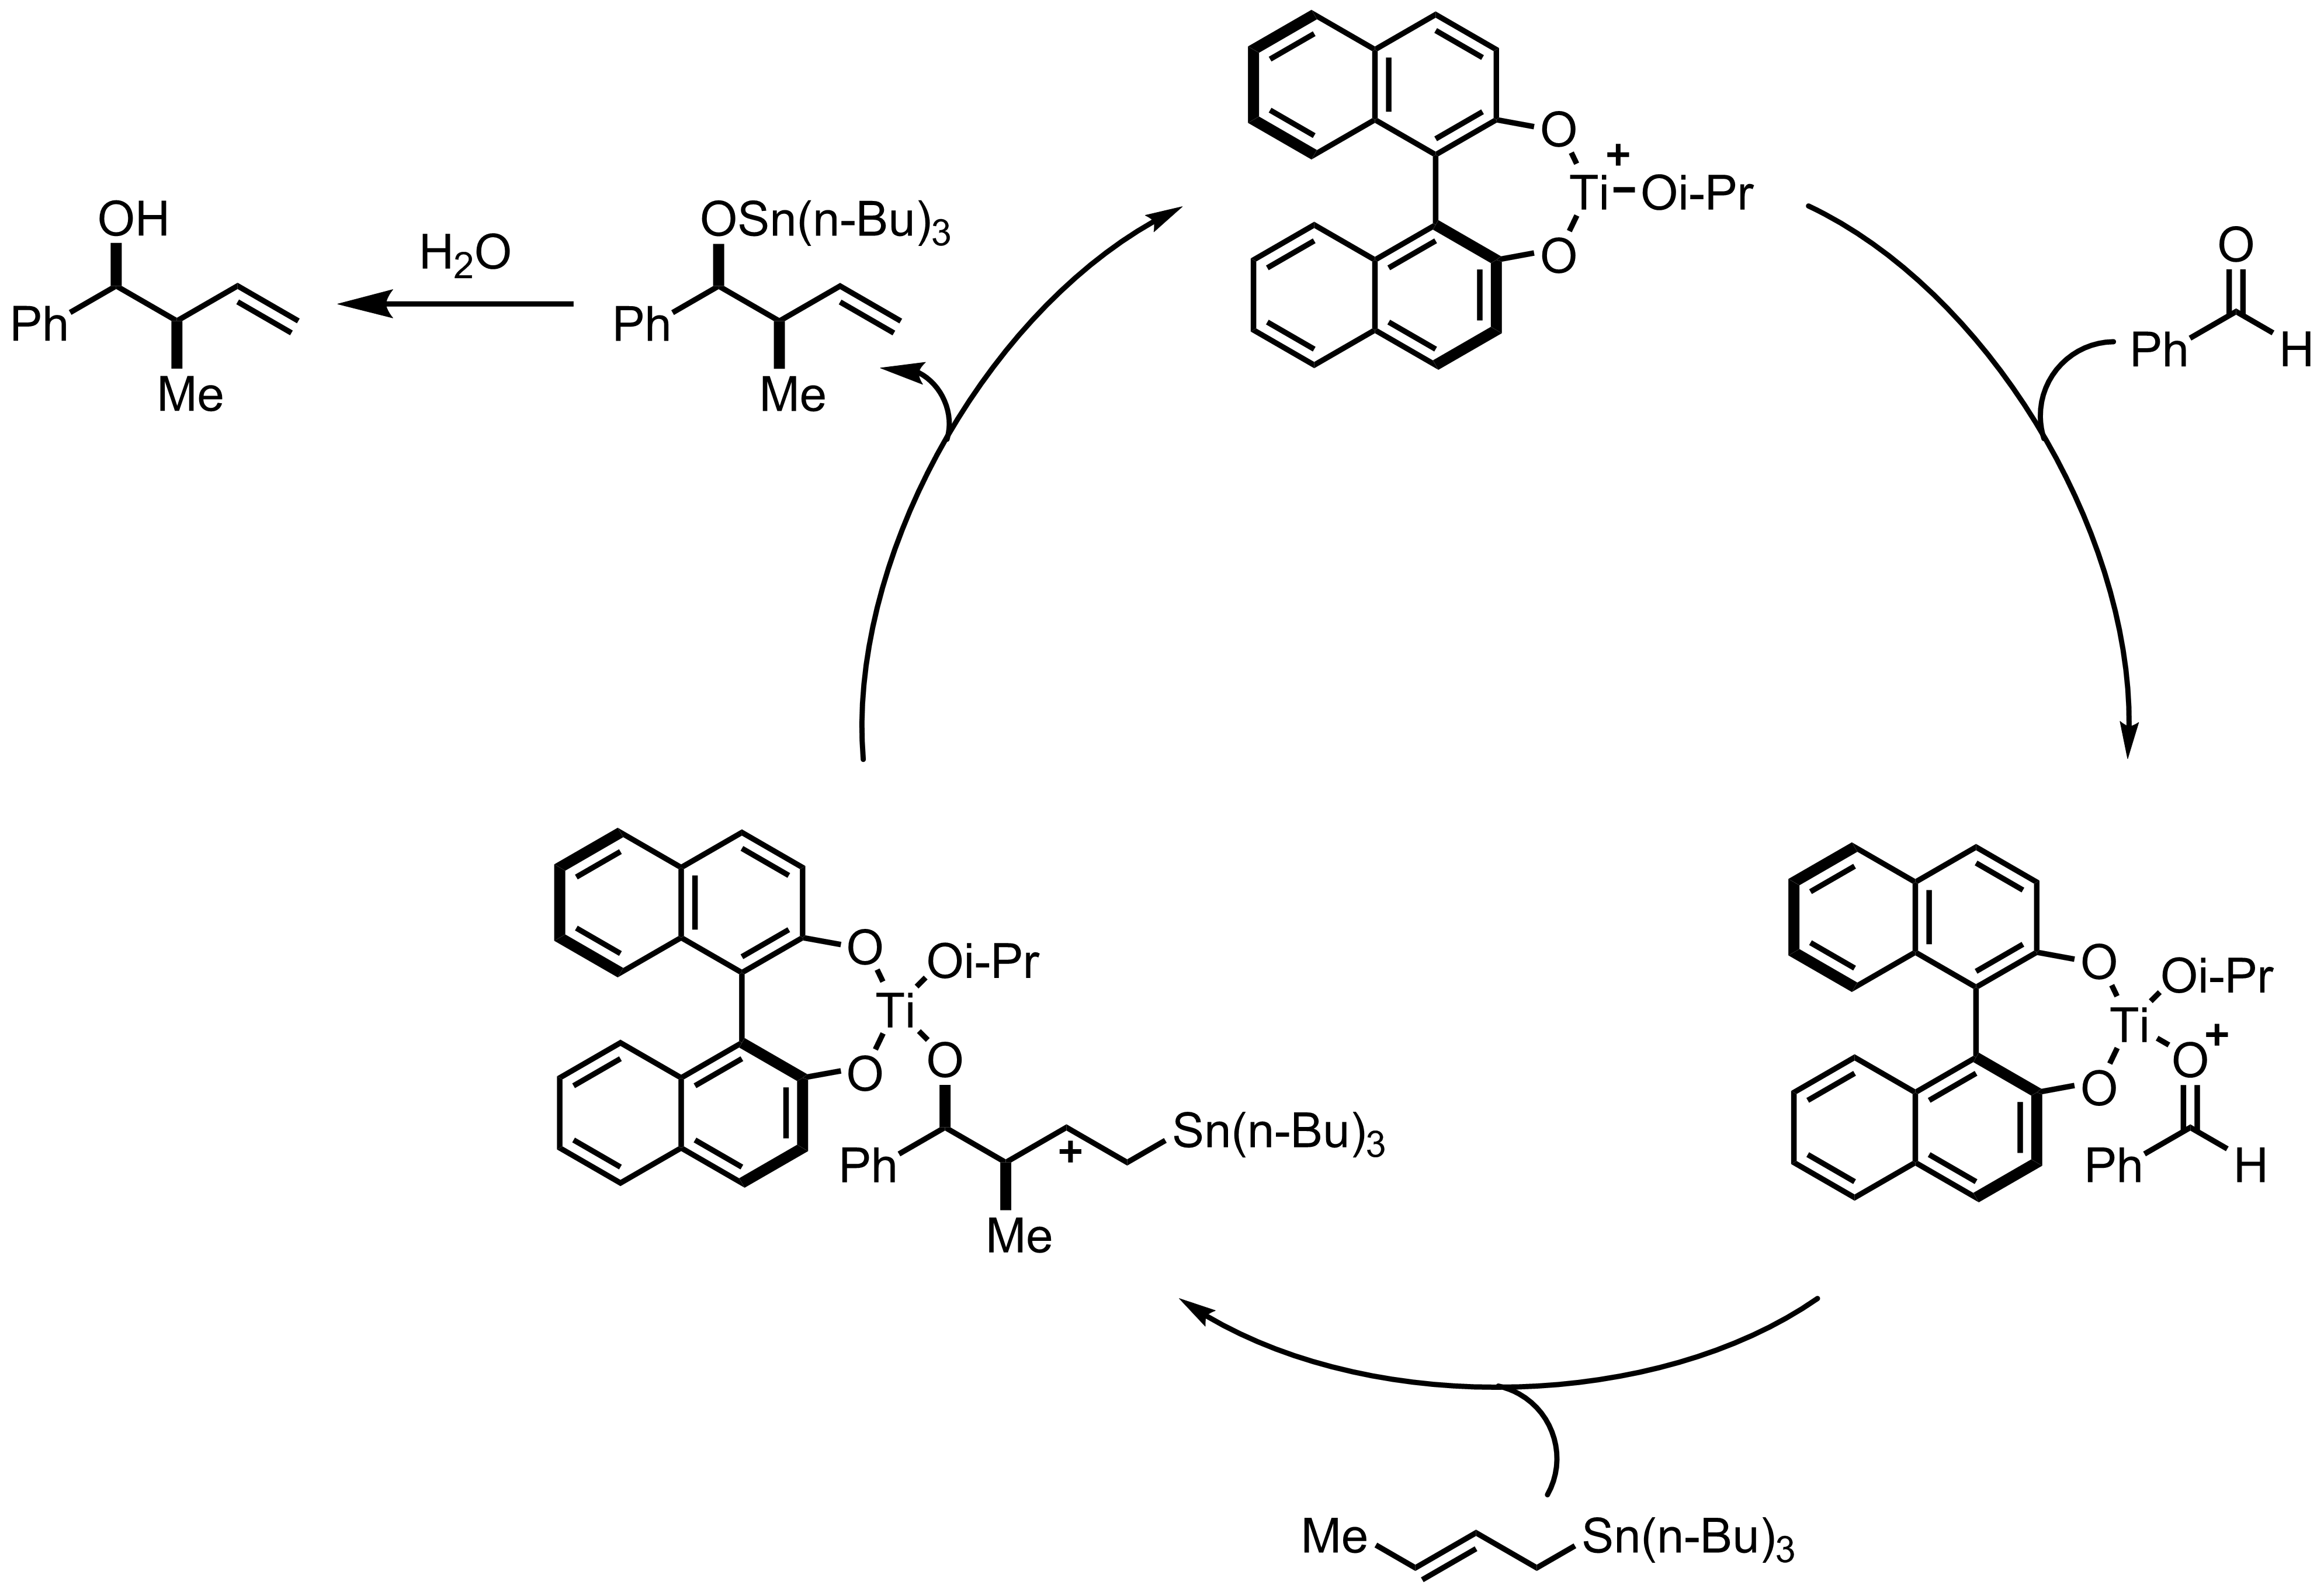 Mechanism of the Keck Asymmetric Allylation